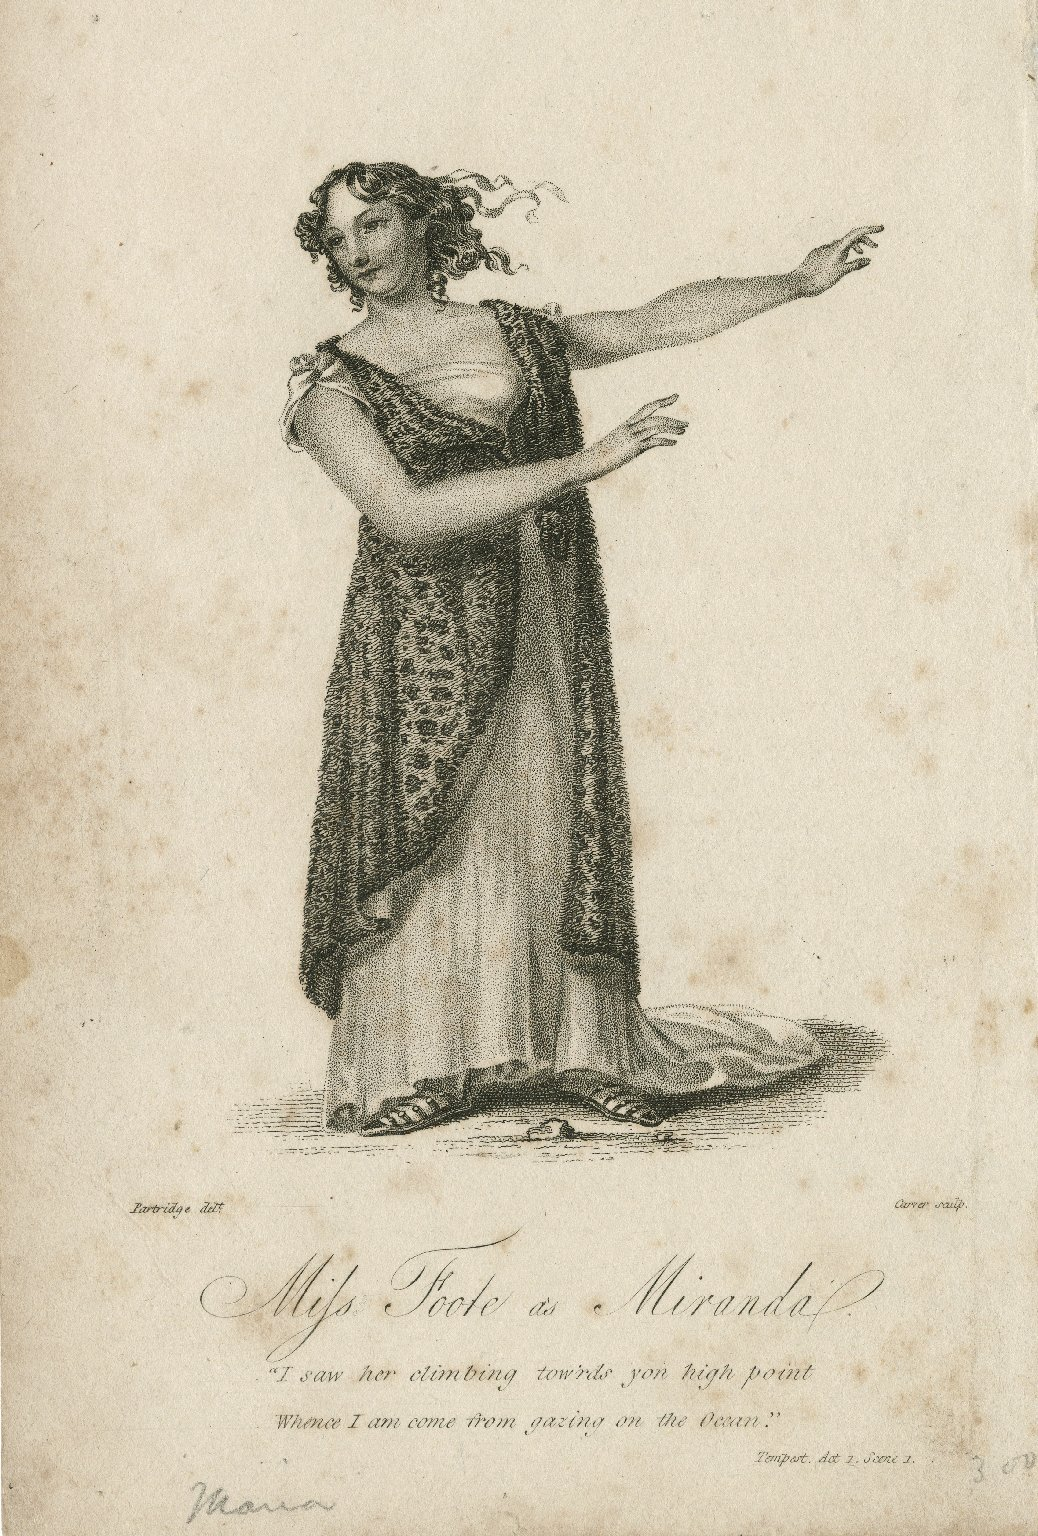 Miss Foote as Miranda ... [in Shakespeare's The tempest] [graphic] / Partridge, delt. ; Carver, sculp.